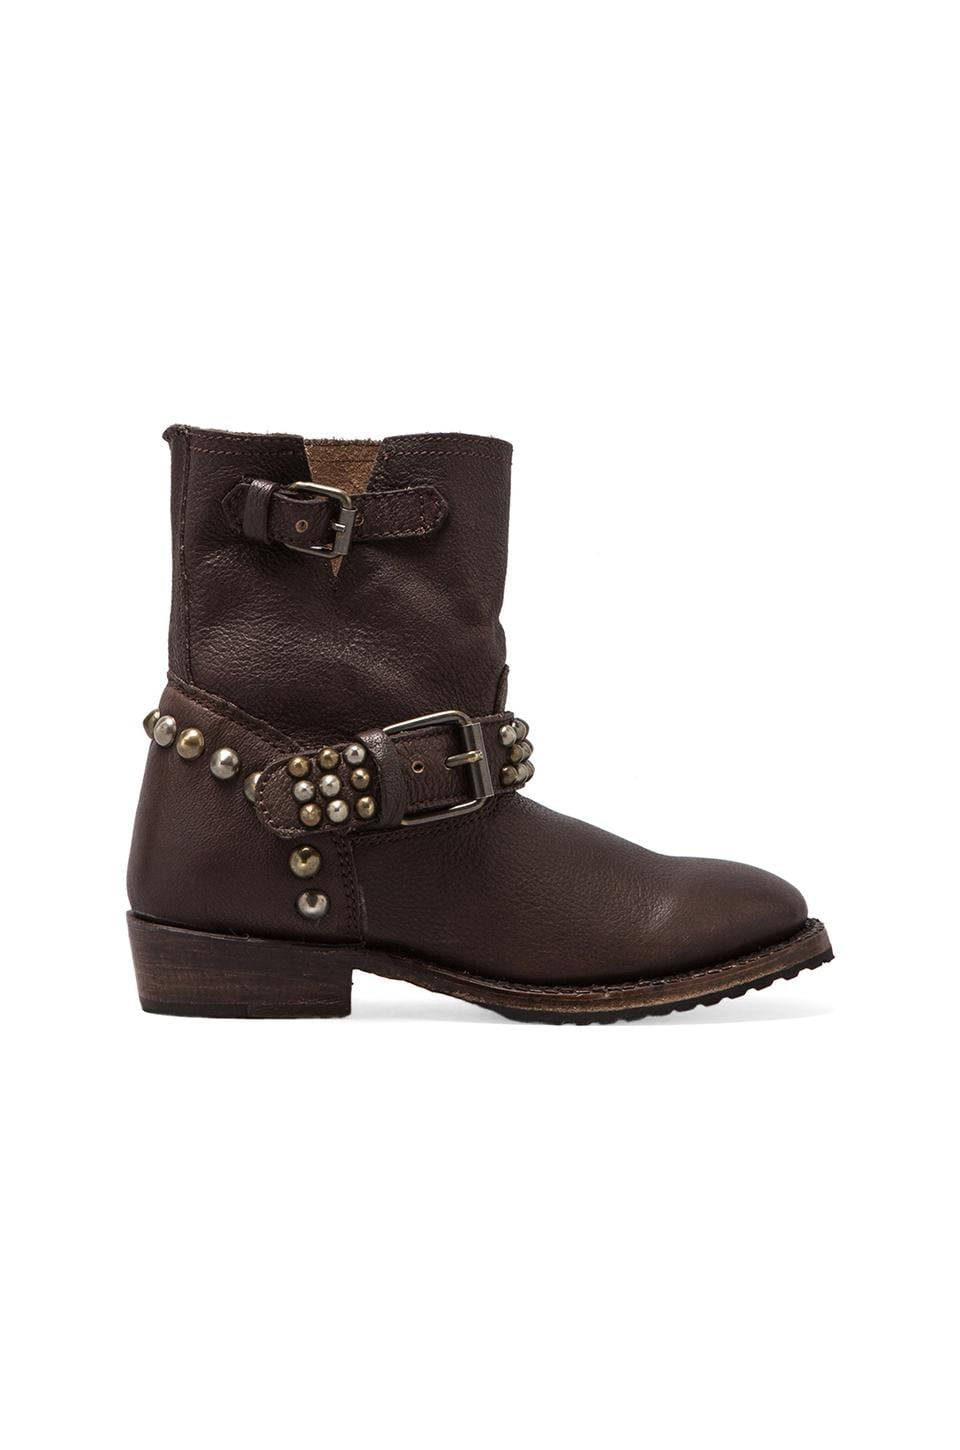 Ash Vicious Studded Bootie in Moro